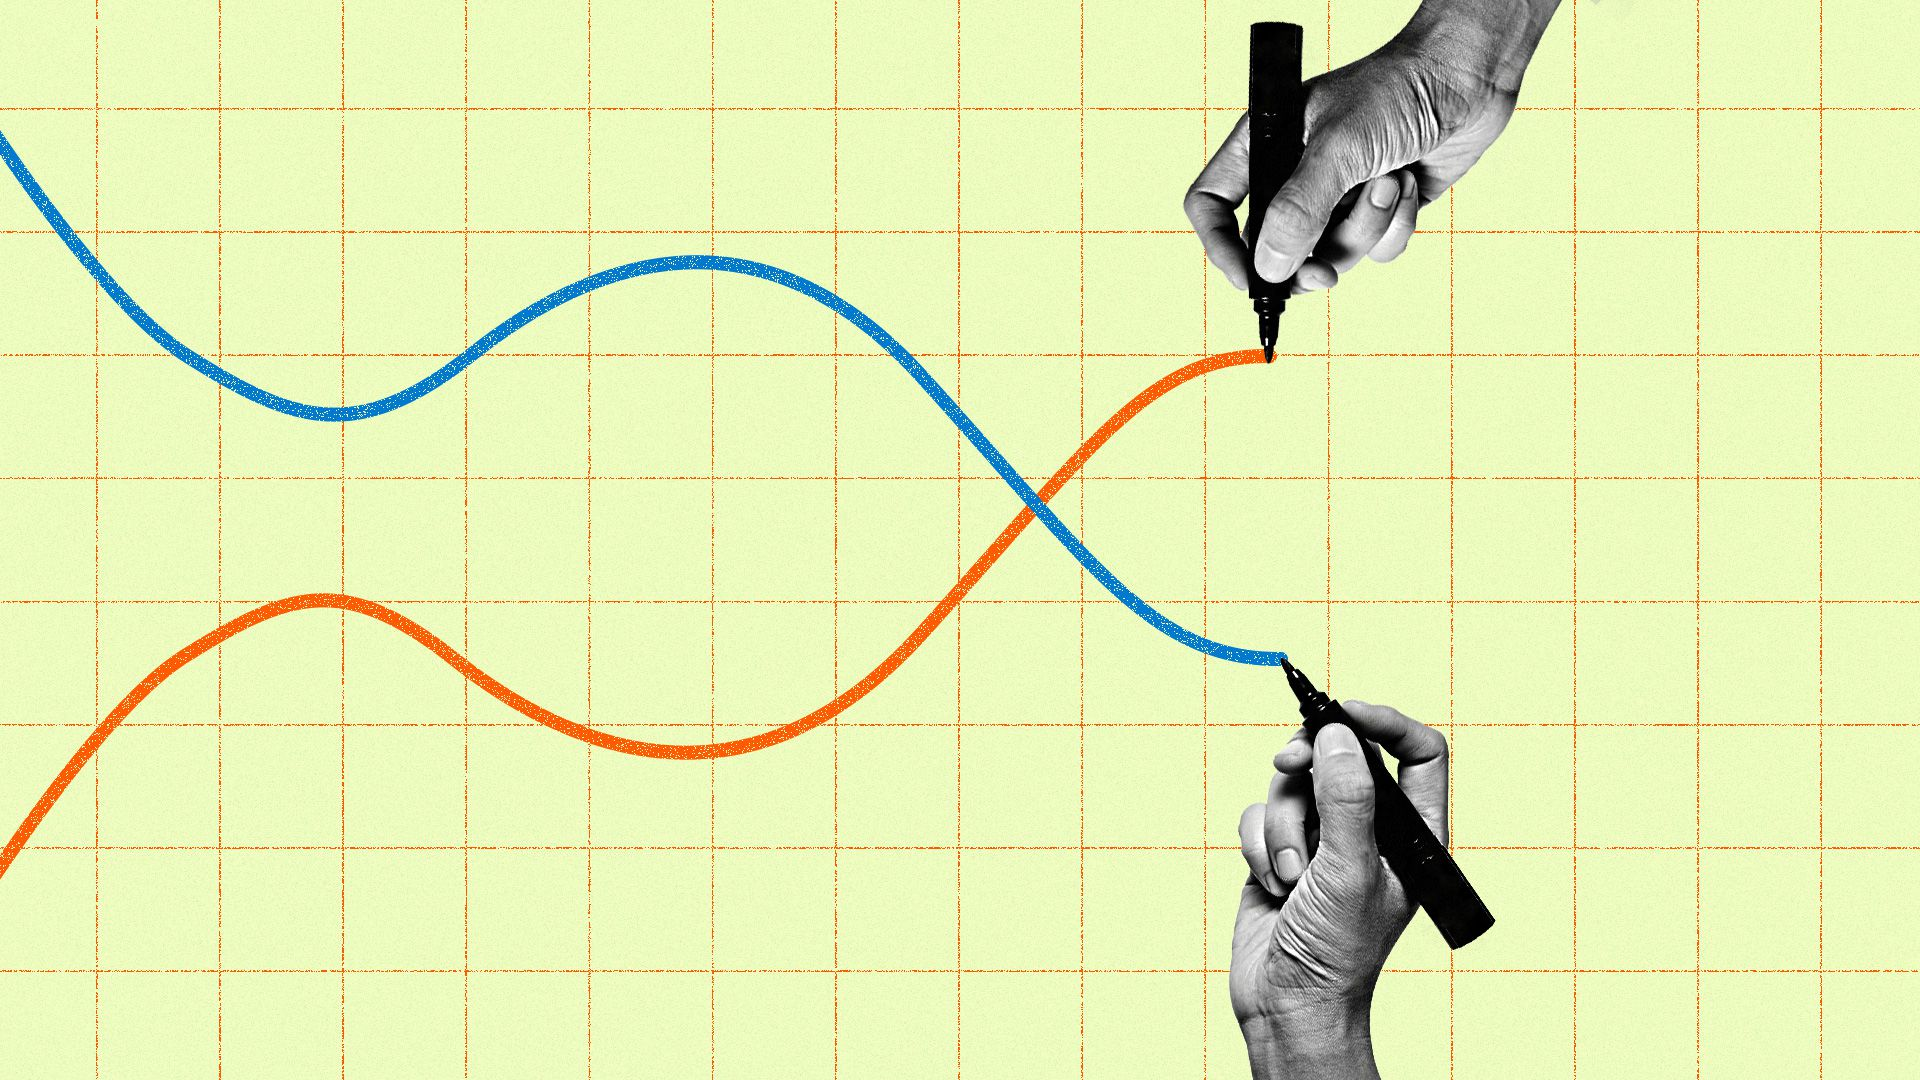 In this illustration, two hands draw parallel yield curves that rise and fall in opposite directions.